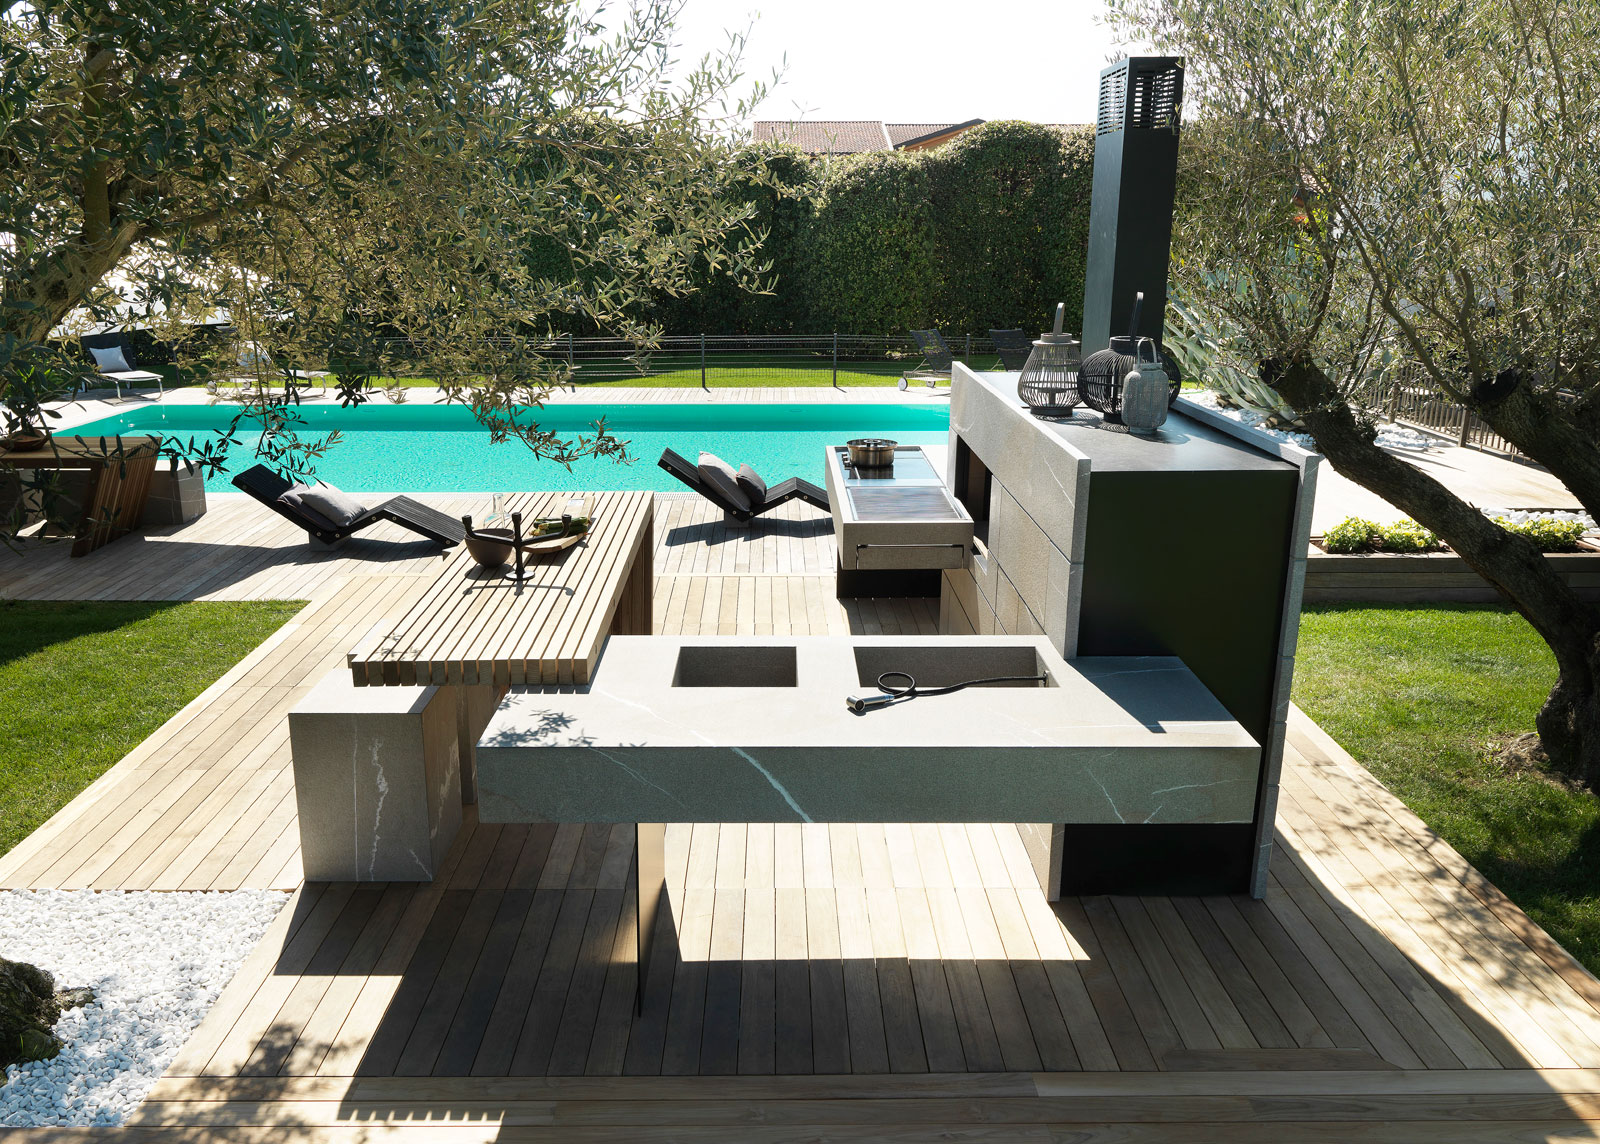 Bring The Inside Outside With The Modulnova Outdoor Kitchen